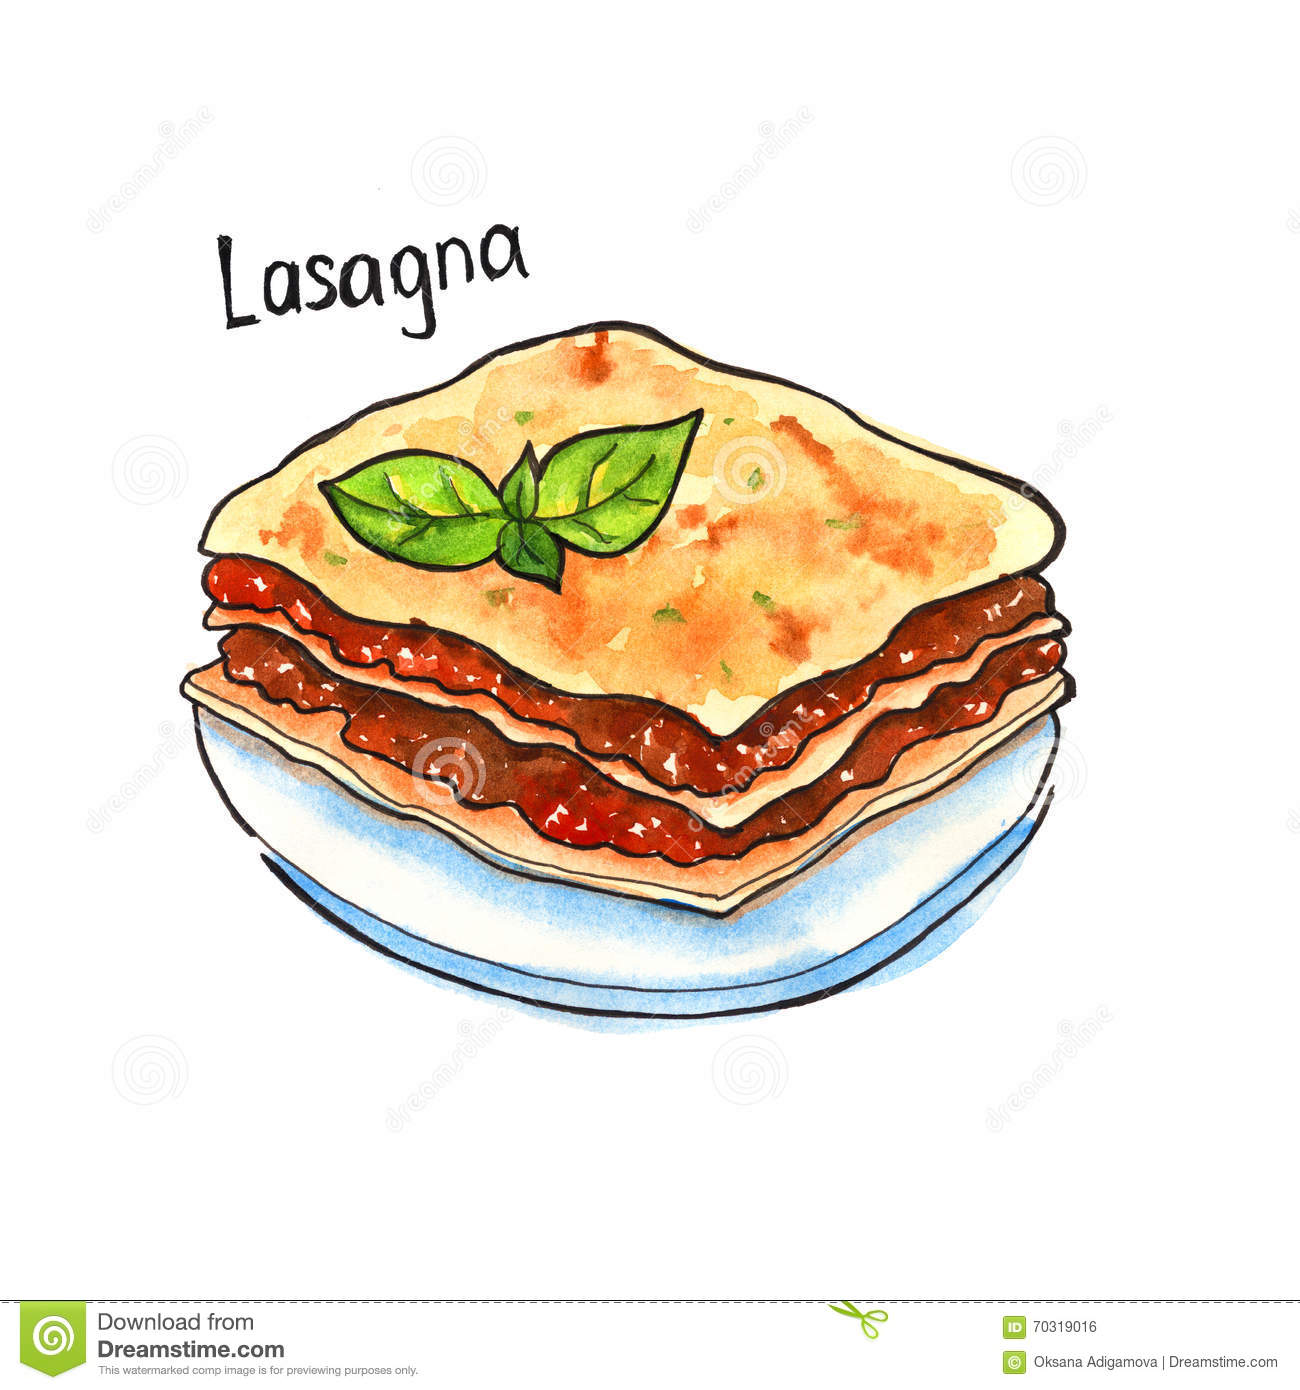 Lasagna italian cuisine isolated watercolor stock for Art de cuisine plates